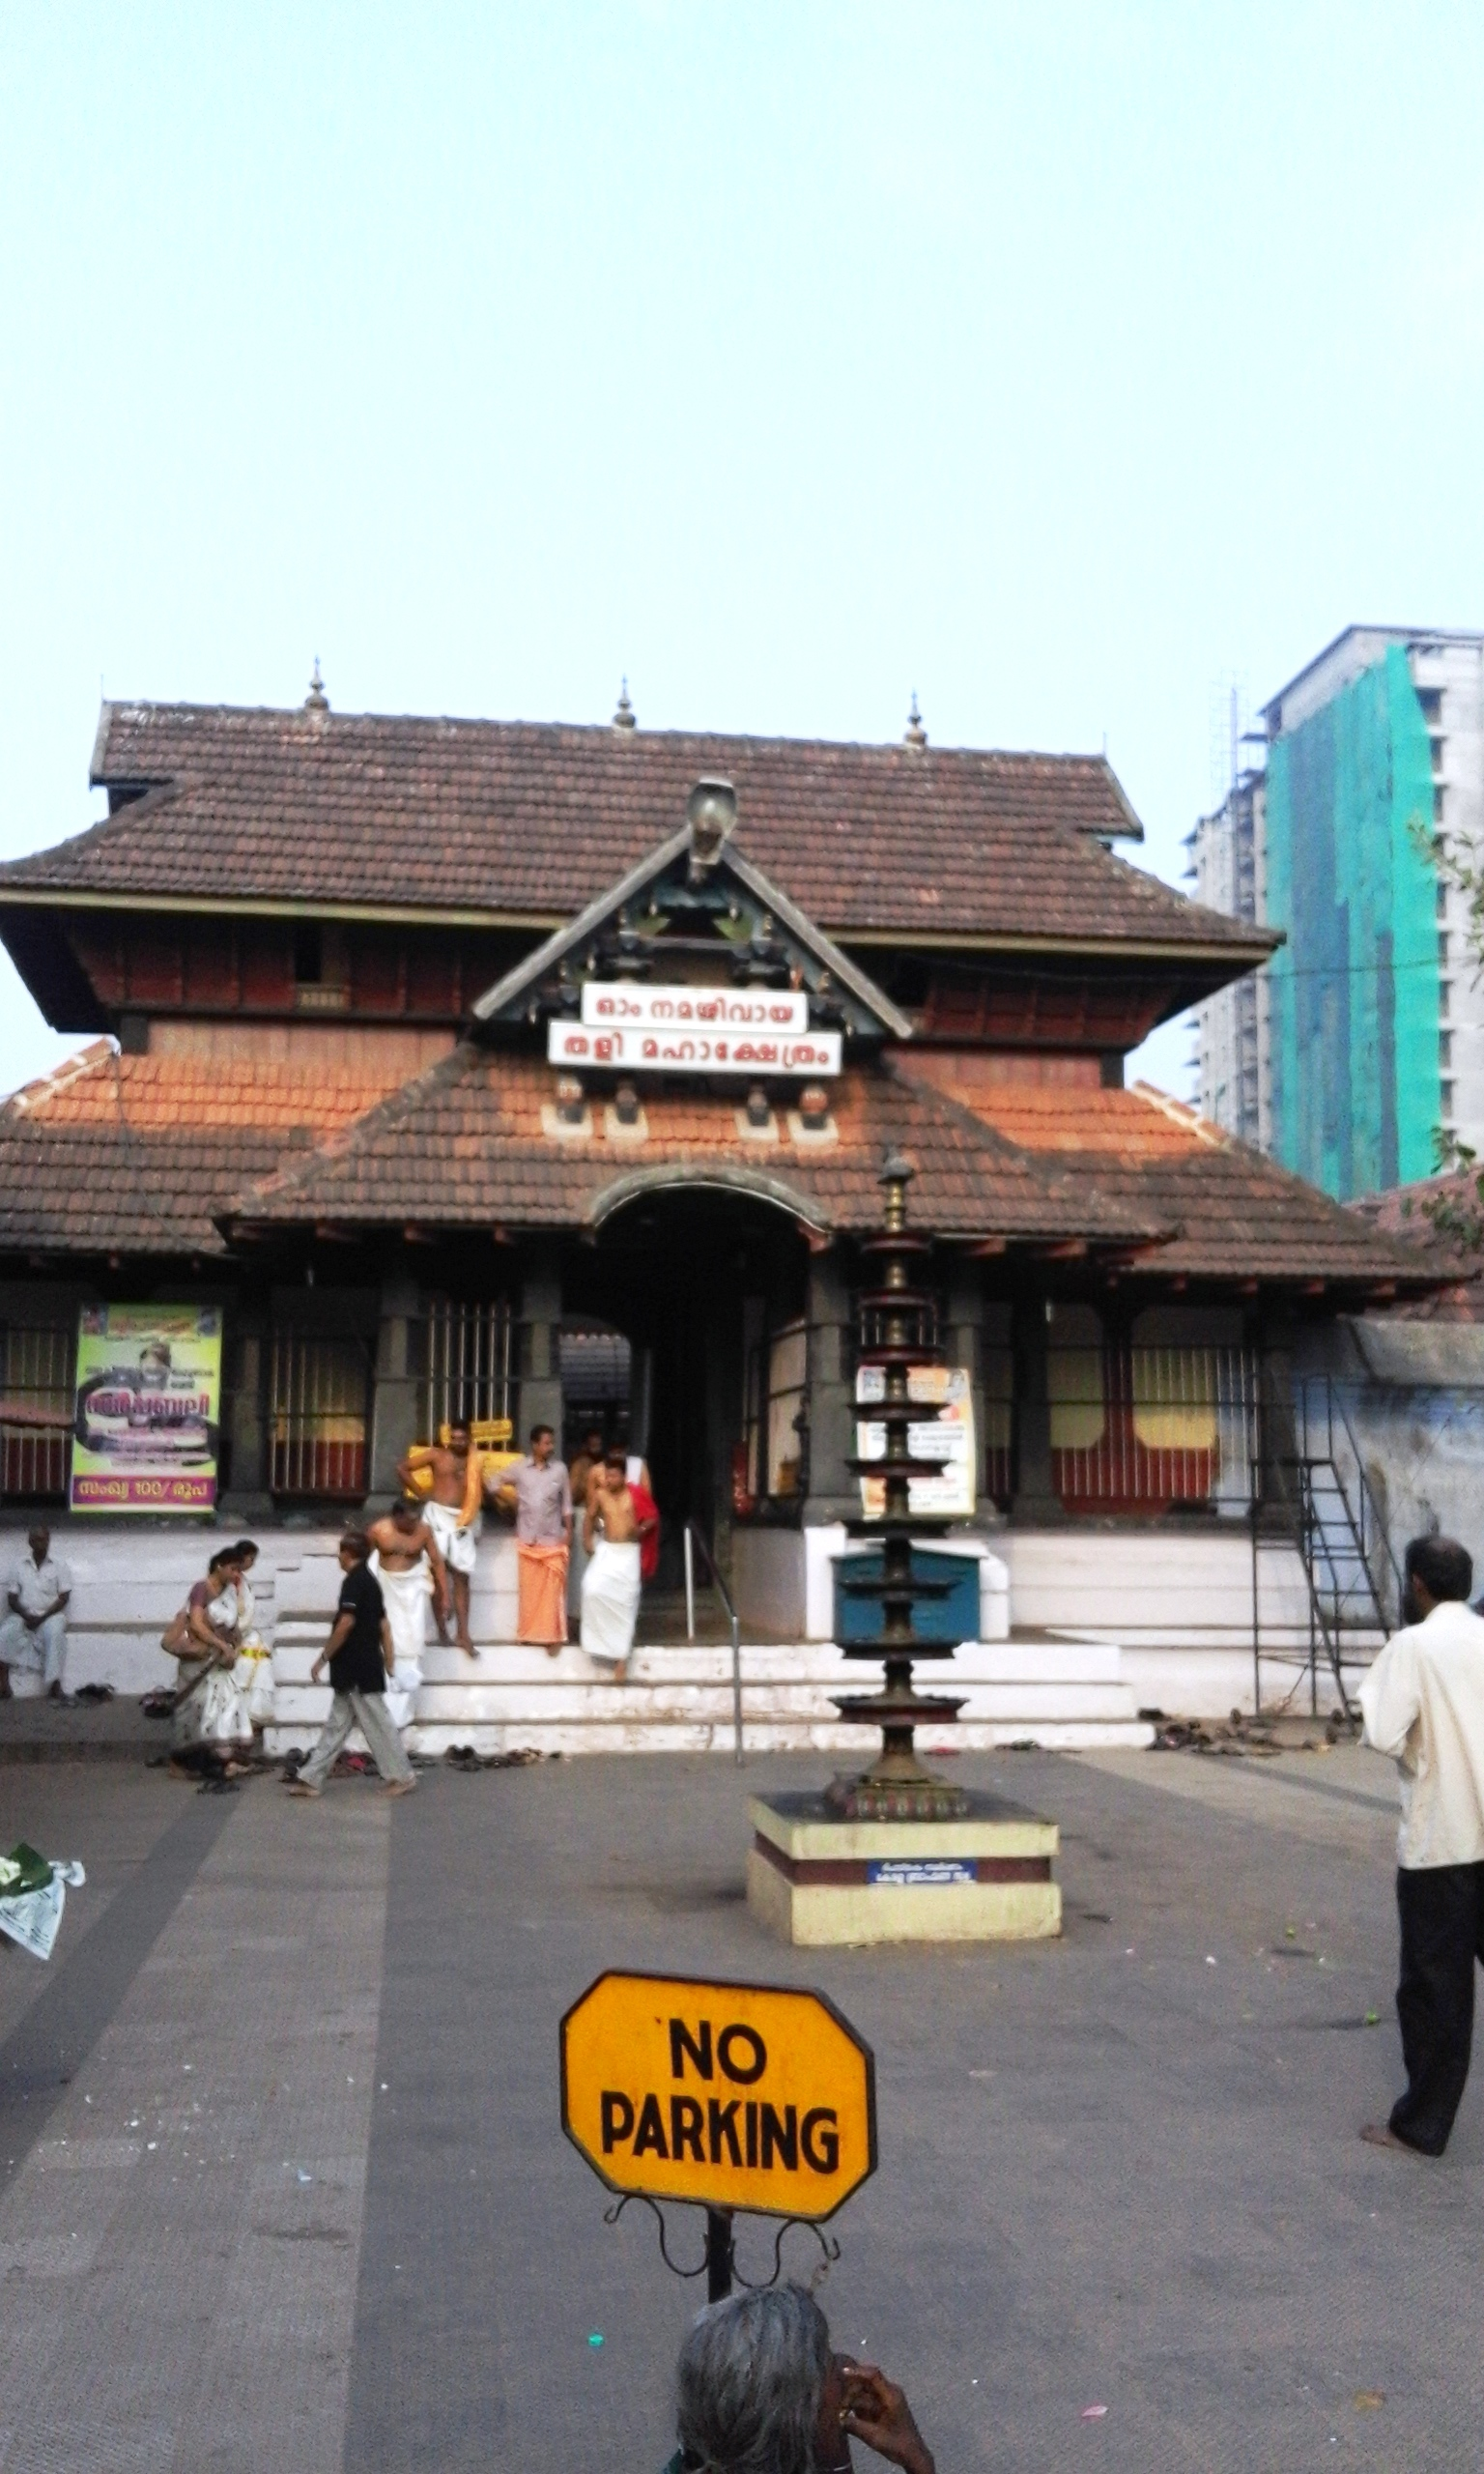 Tali Temple is one of the famous temples in Kerala